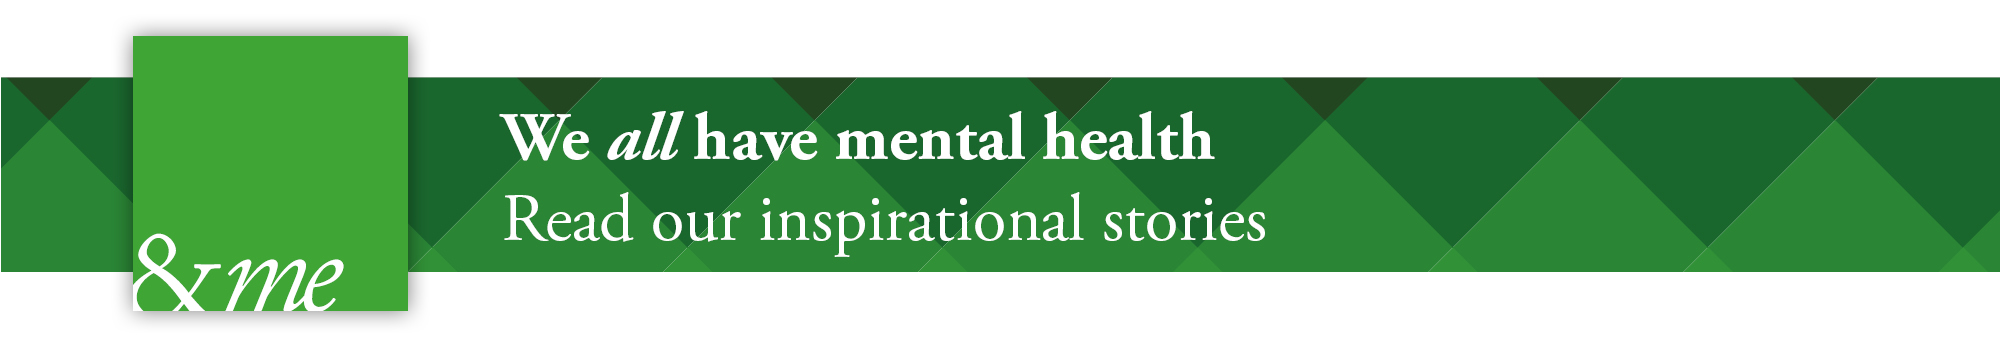 &me banner - Weall have mental health - Read our inspirational stories